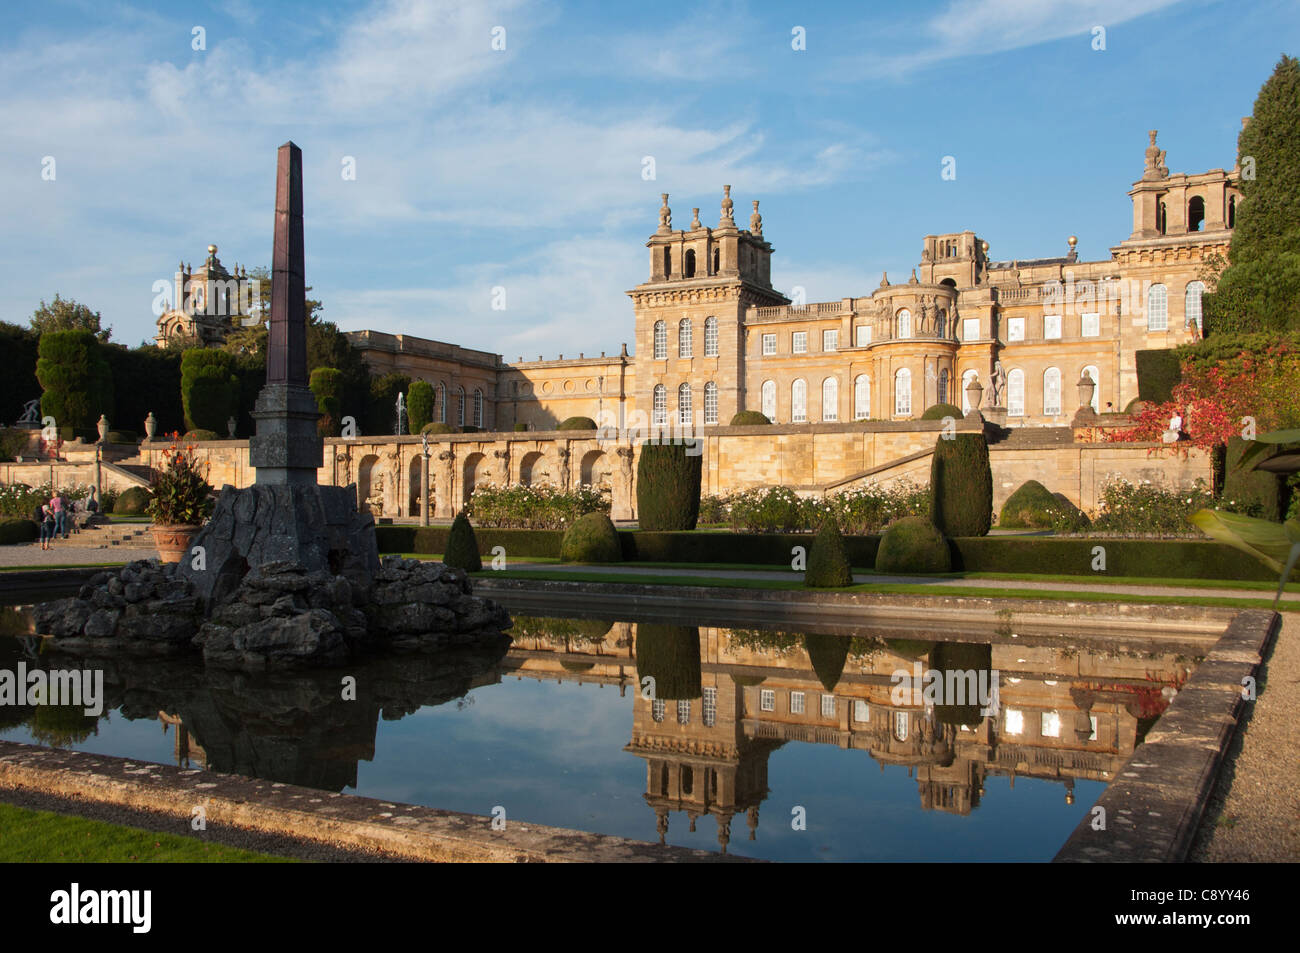 Formal gardens at Blenheim Palace, Oxfordshire. UK - Stock Image